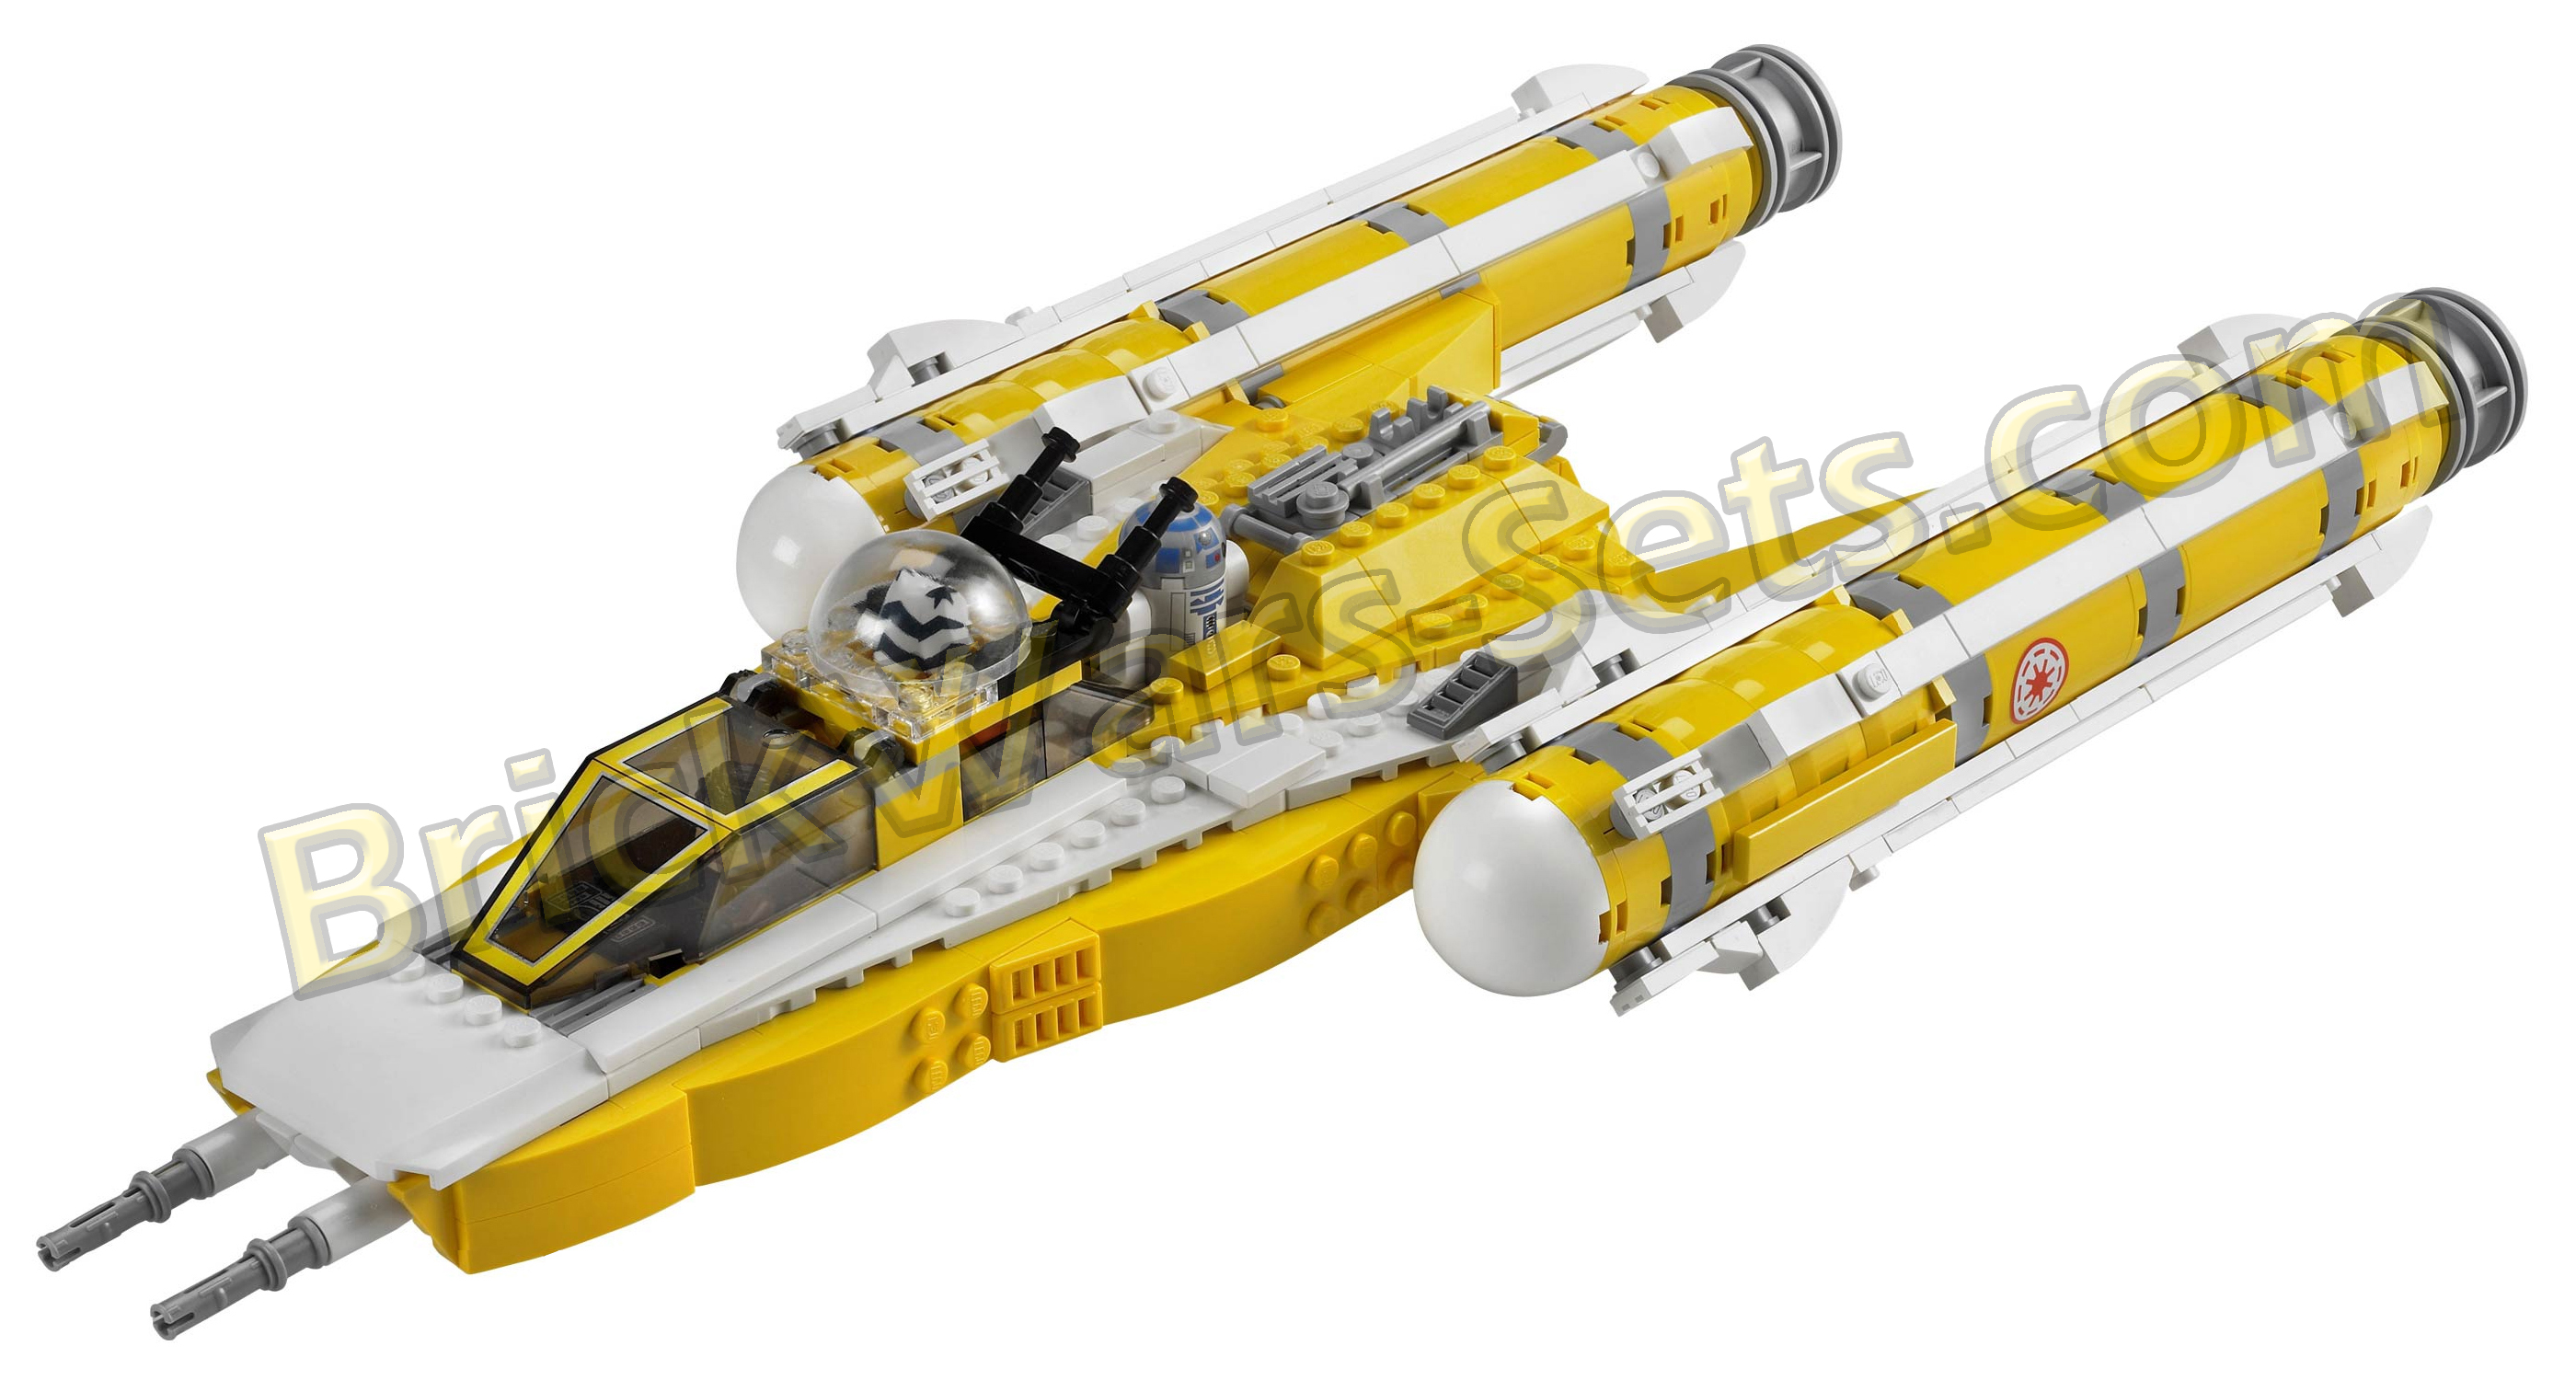 Lego 8037 Anakin's Y-Wing Starfighter - Alternate View 1